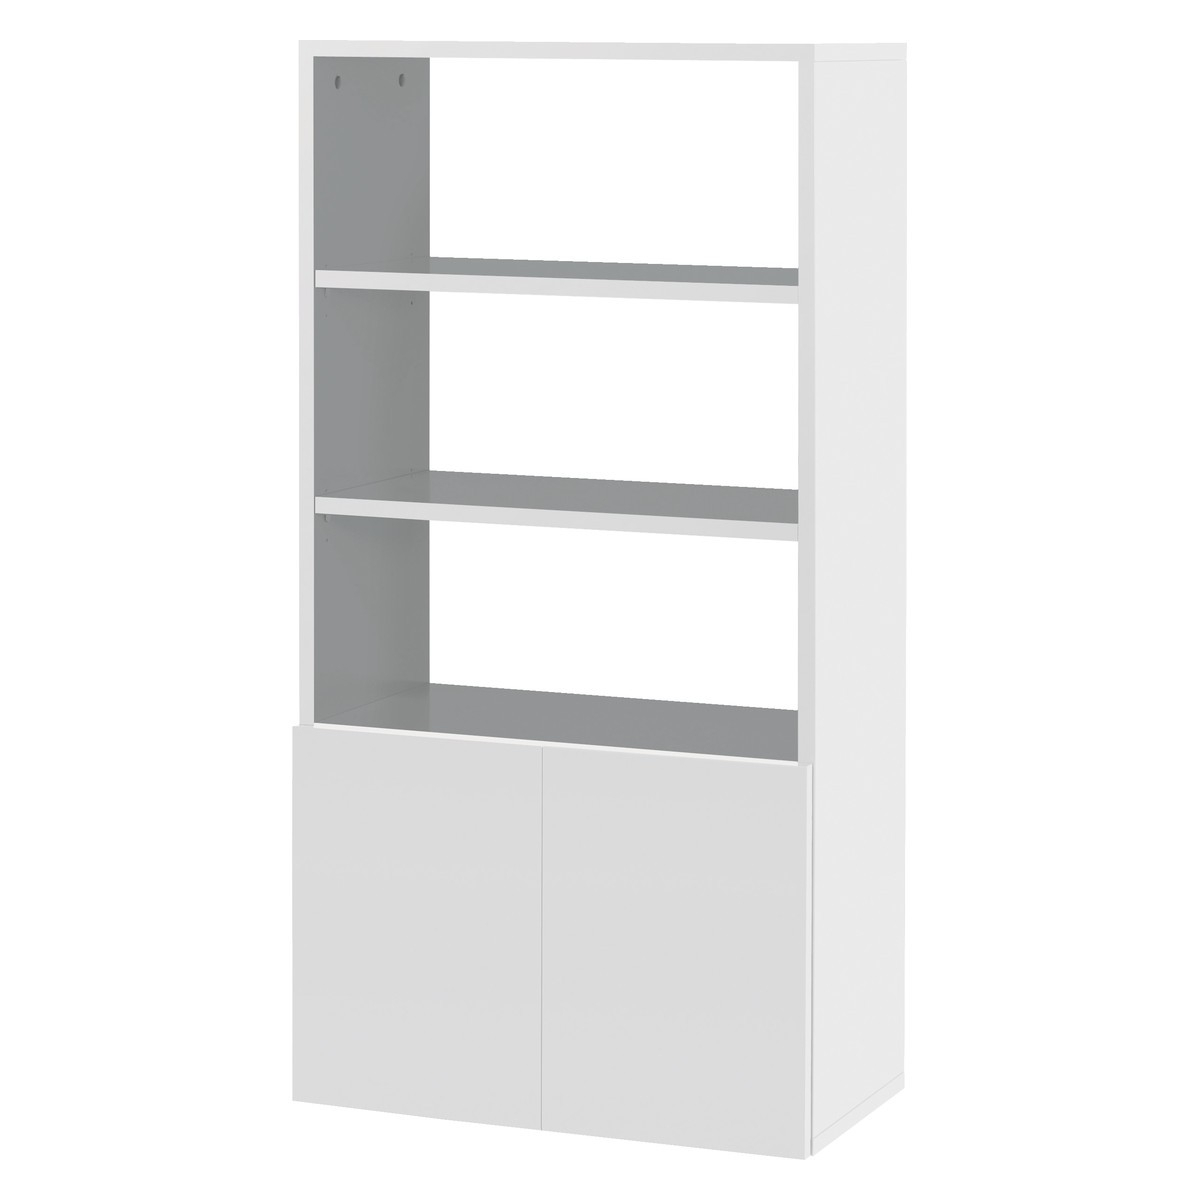 Buy Now At Habitat Uk Intended For Popular White Shelving Units (View 2 of 15)